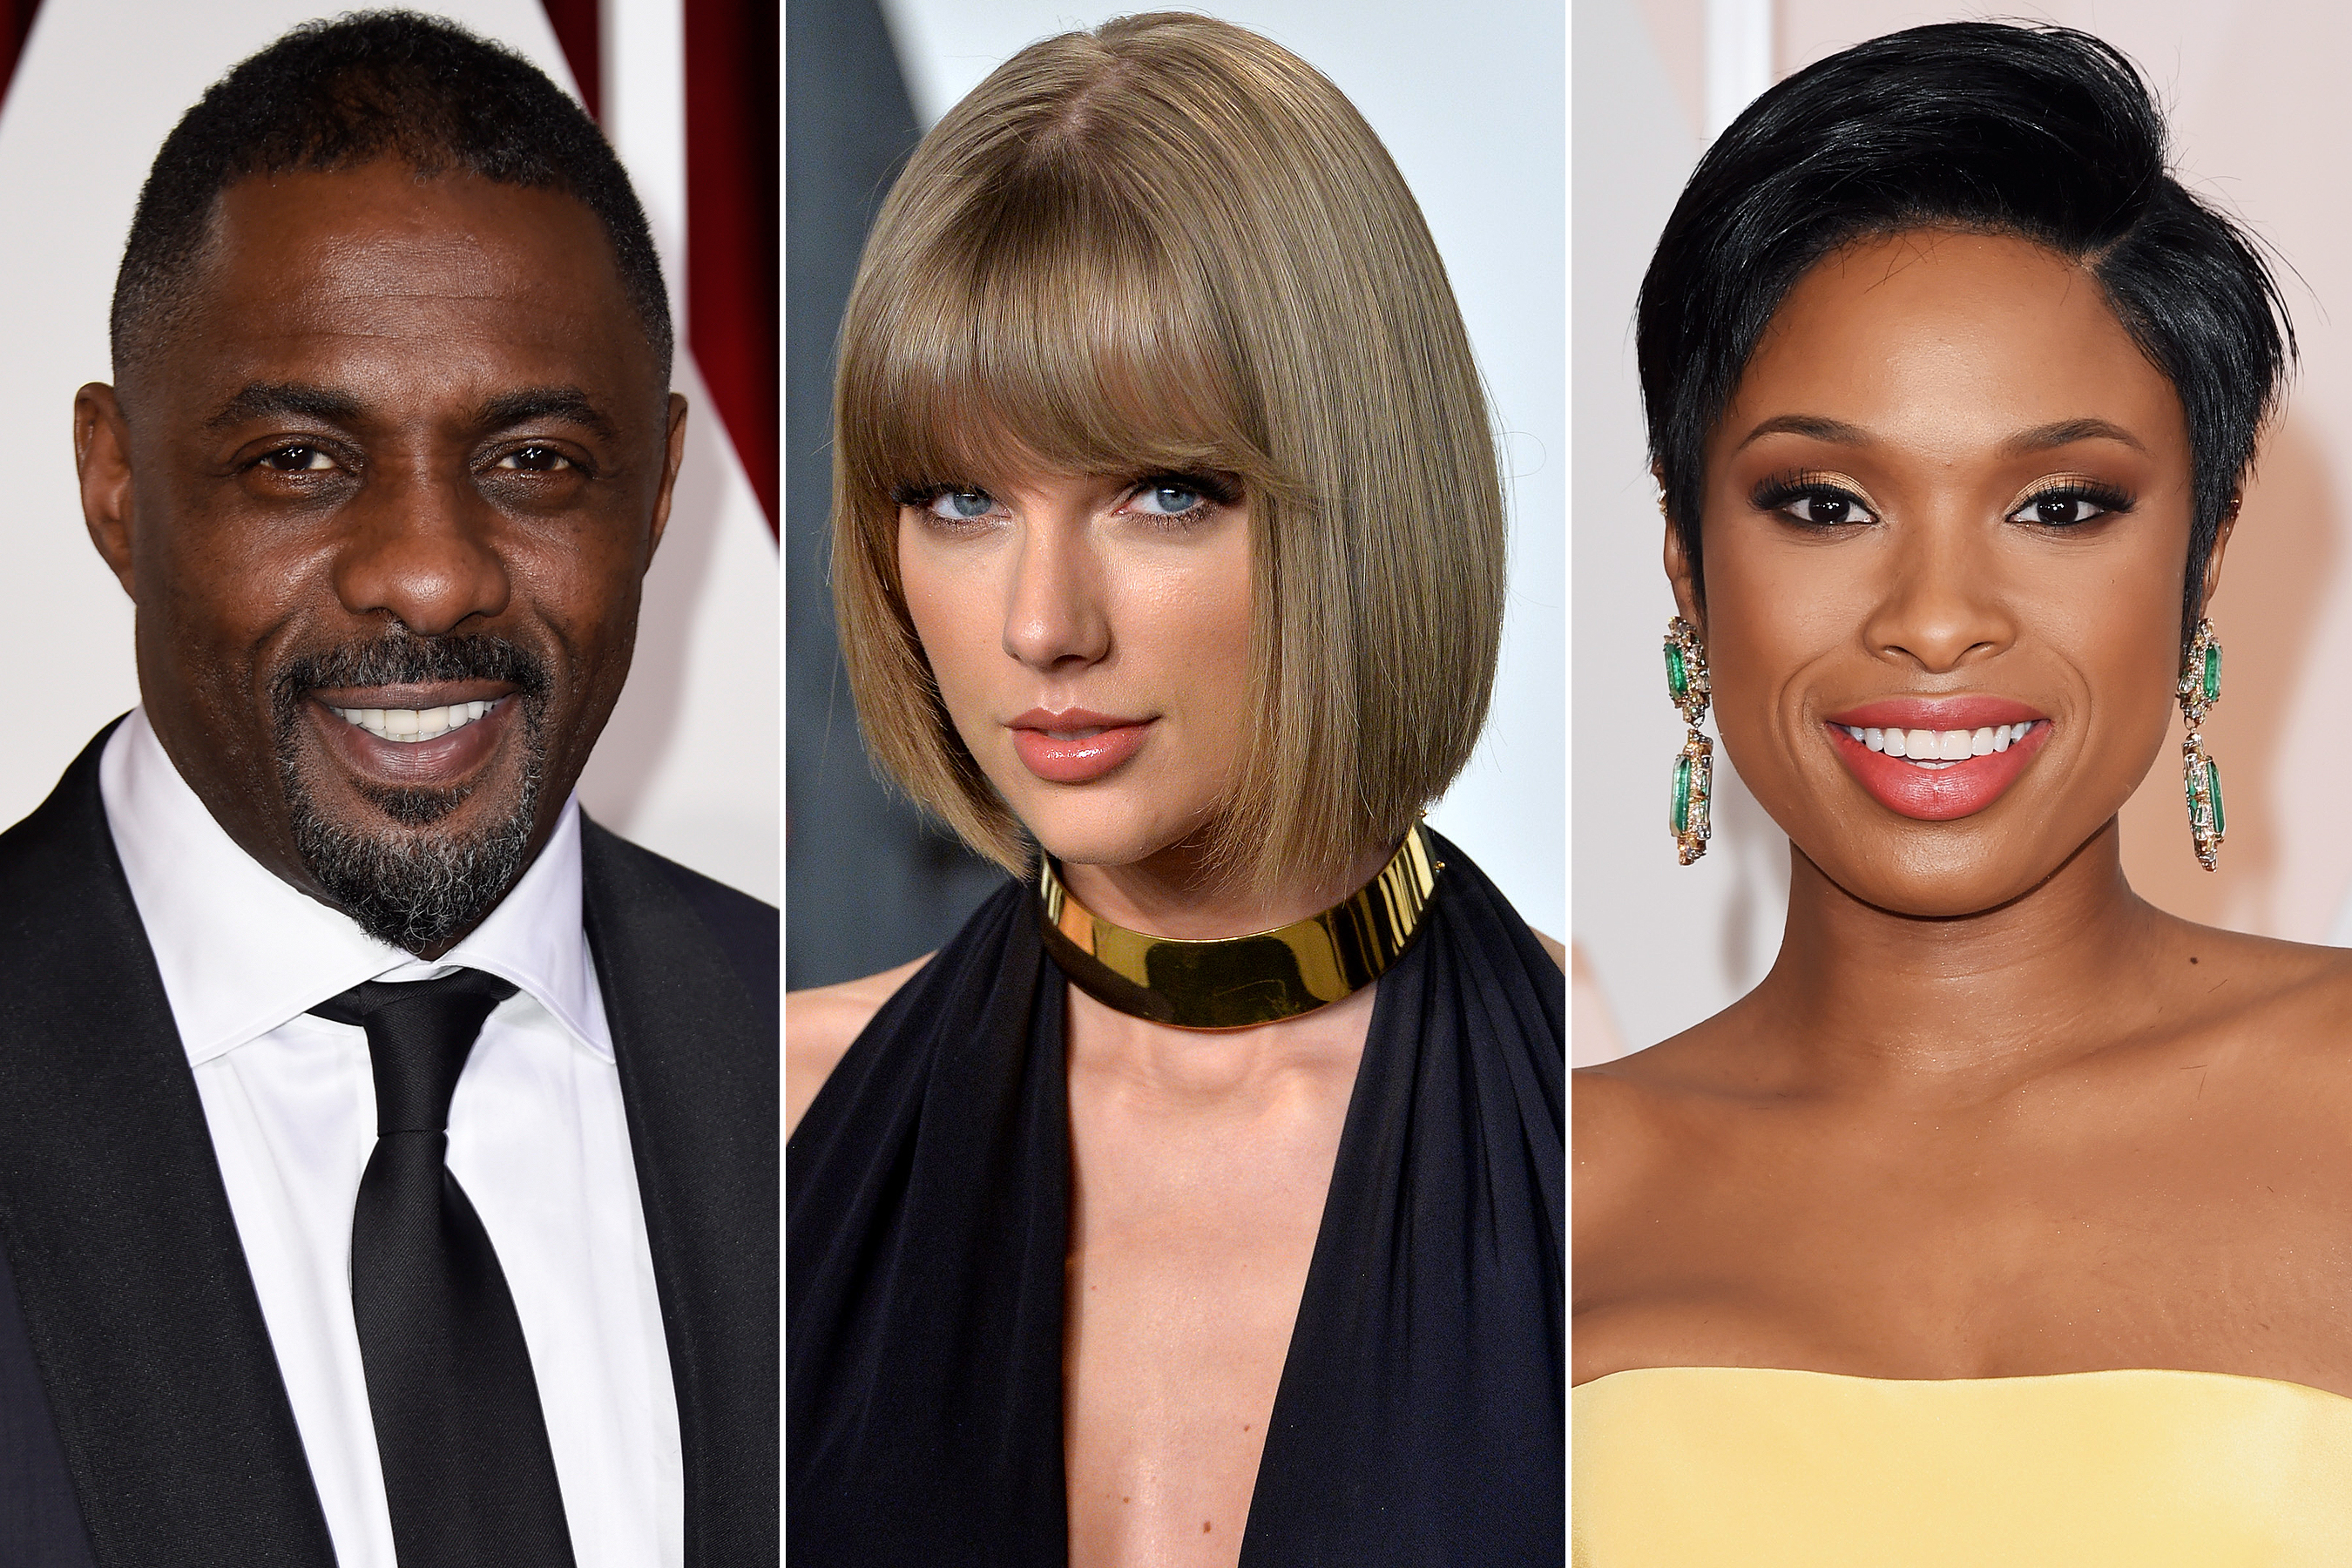 Idris Elba Joins Jennifer Hudson, Taylor Swift in 'Cats' Movie Adaptation